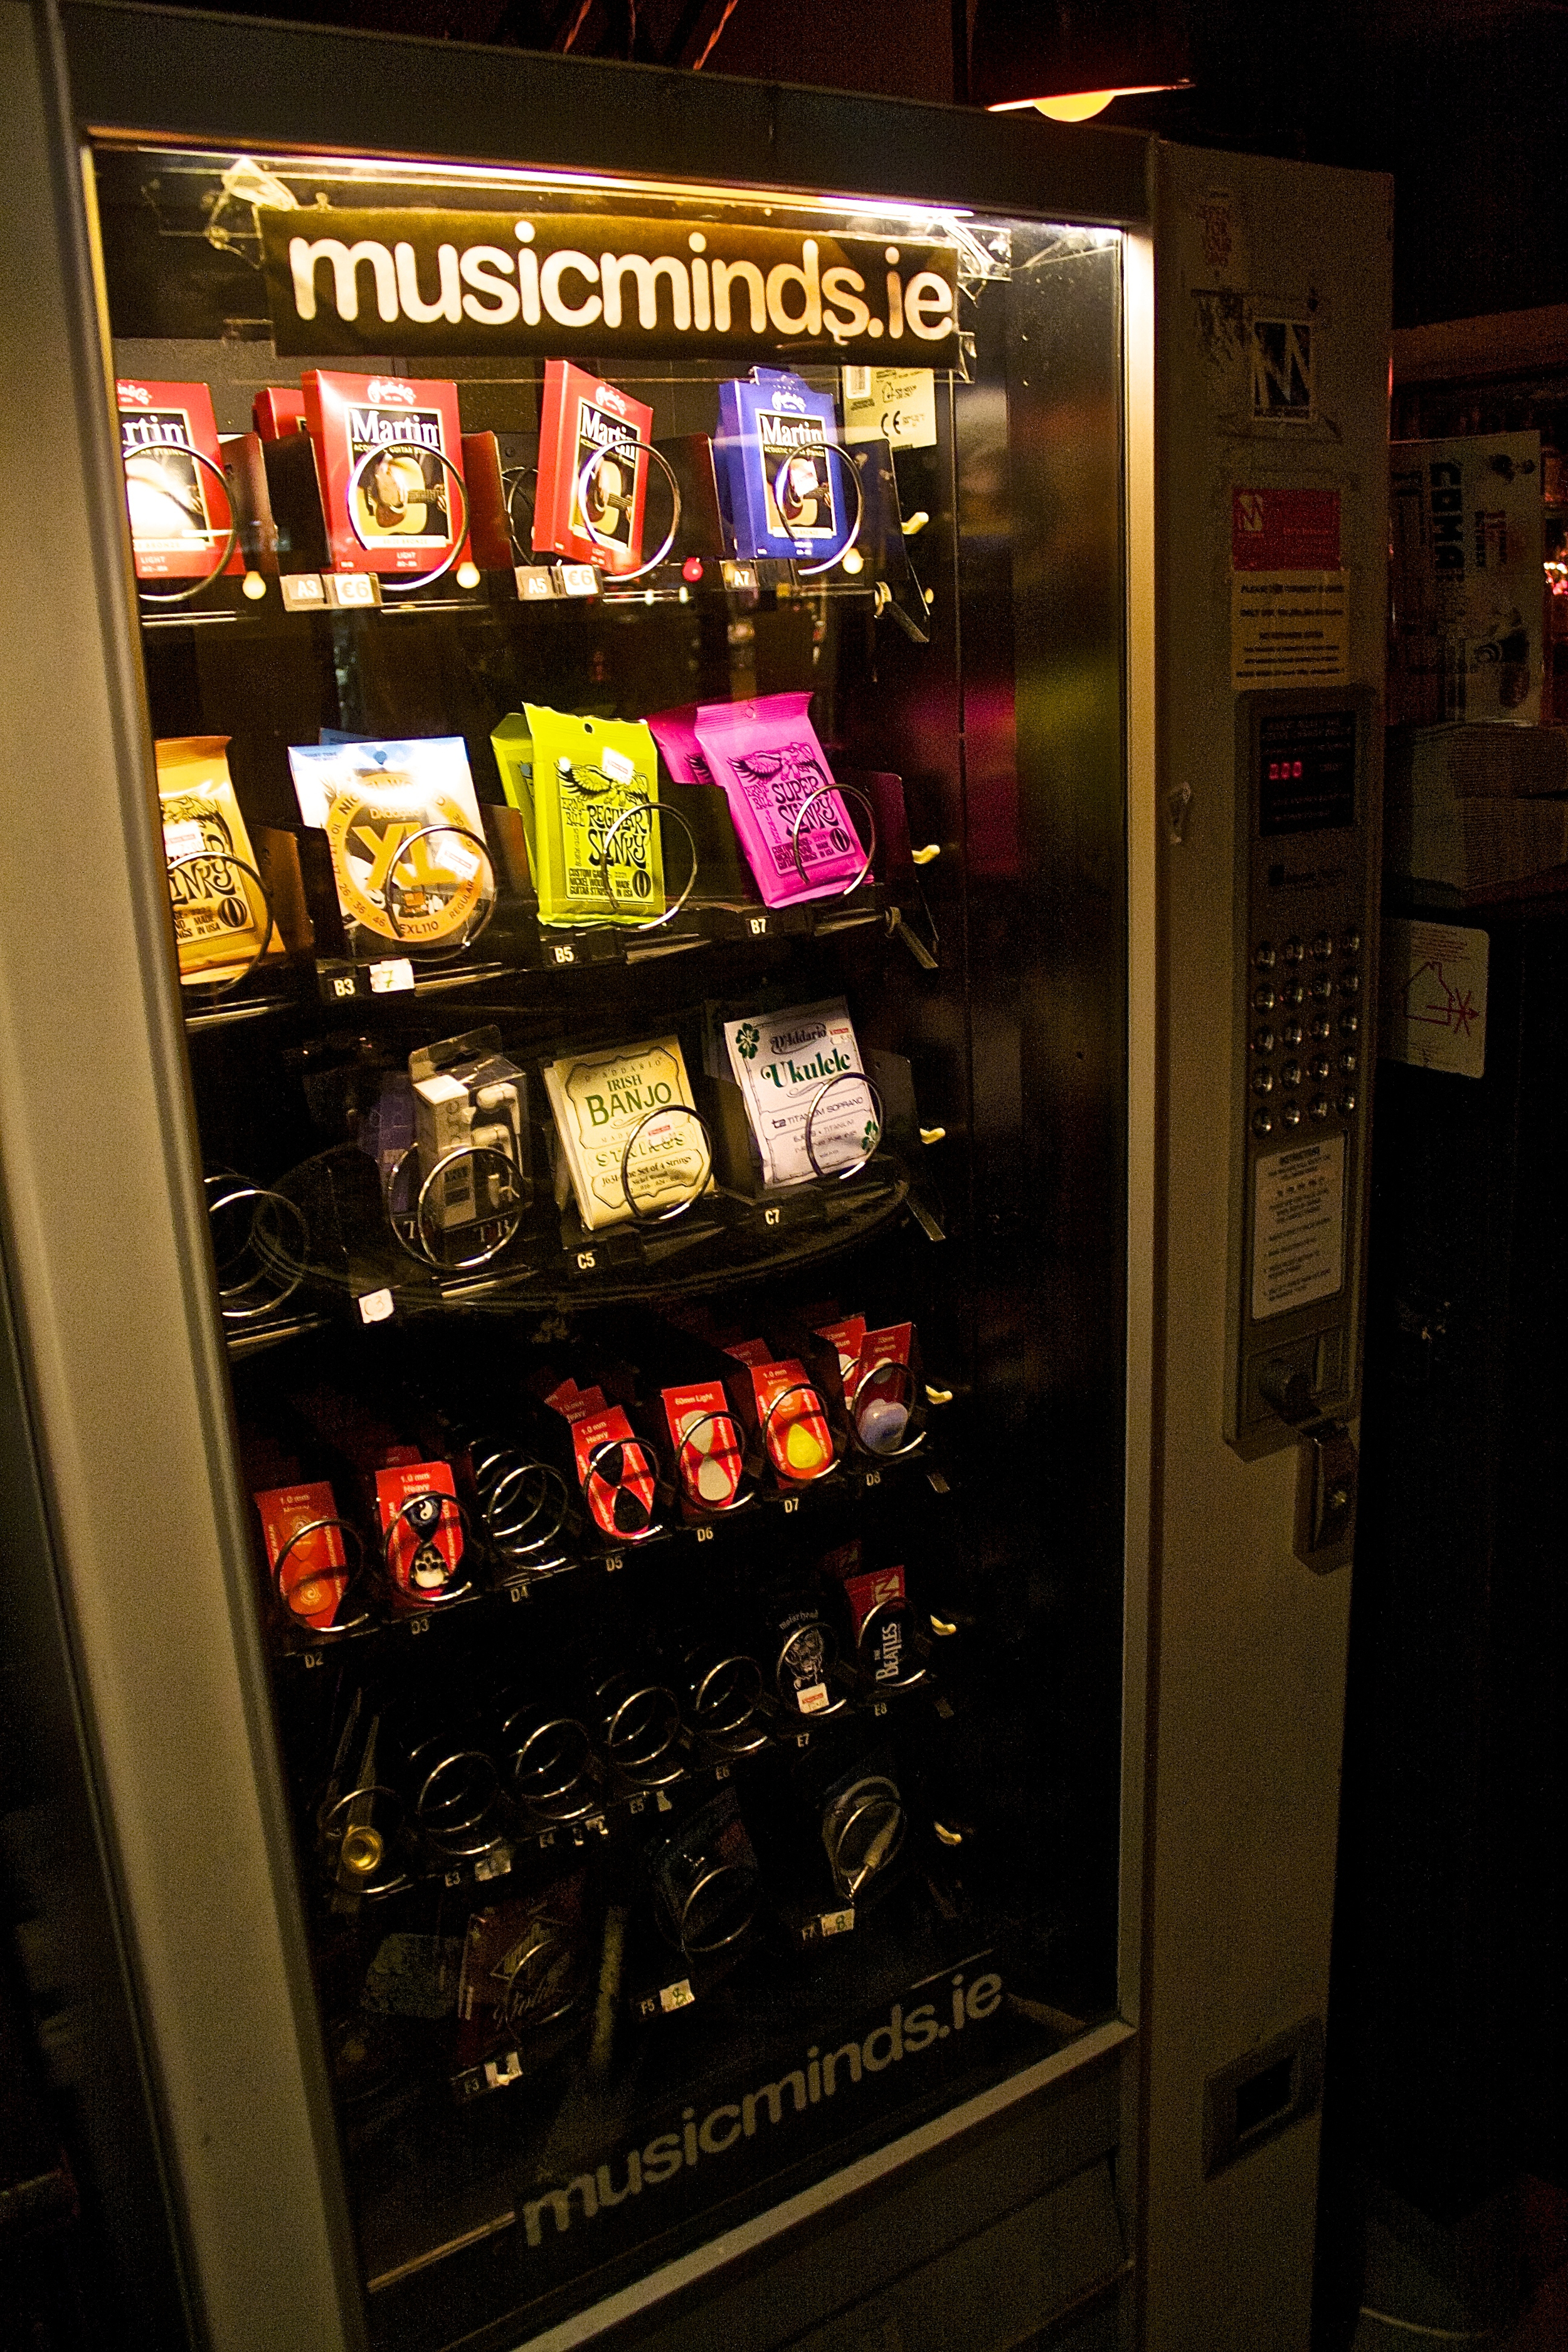 A vending machine to guitarists with plectrums, headphones, guitar strings and so on.